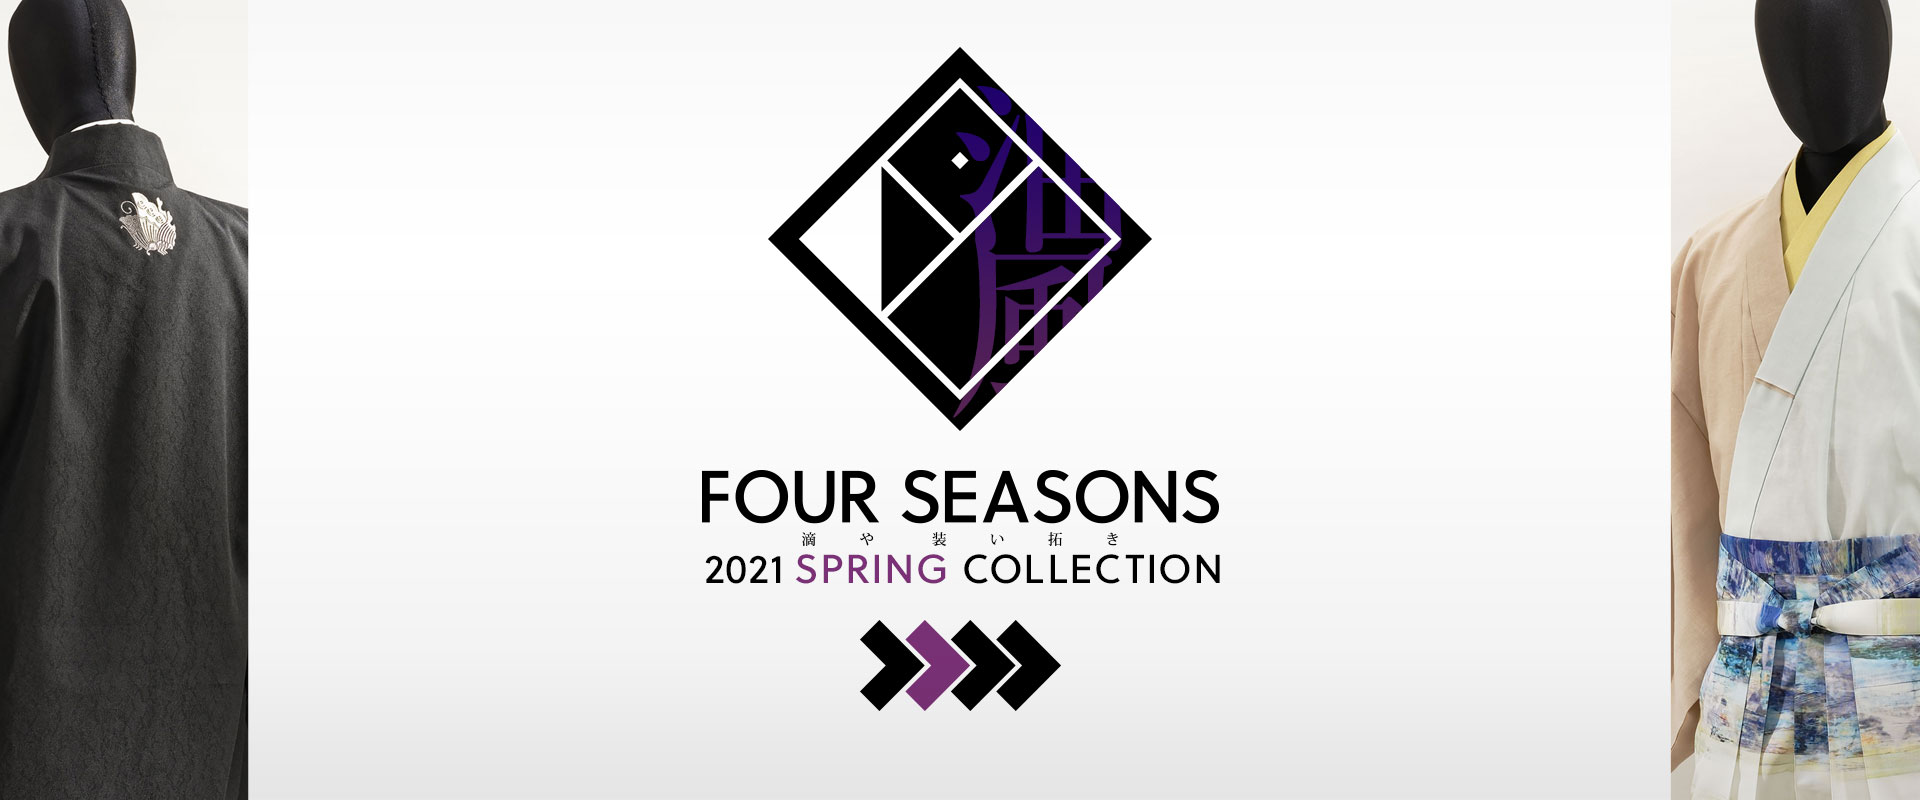 [PHOTO:FOUR SEASONS 2021 SPRING COLLECTION]